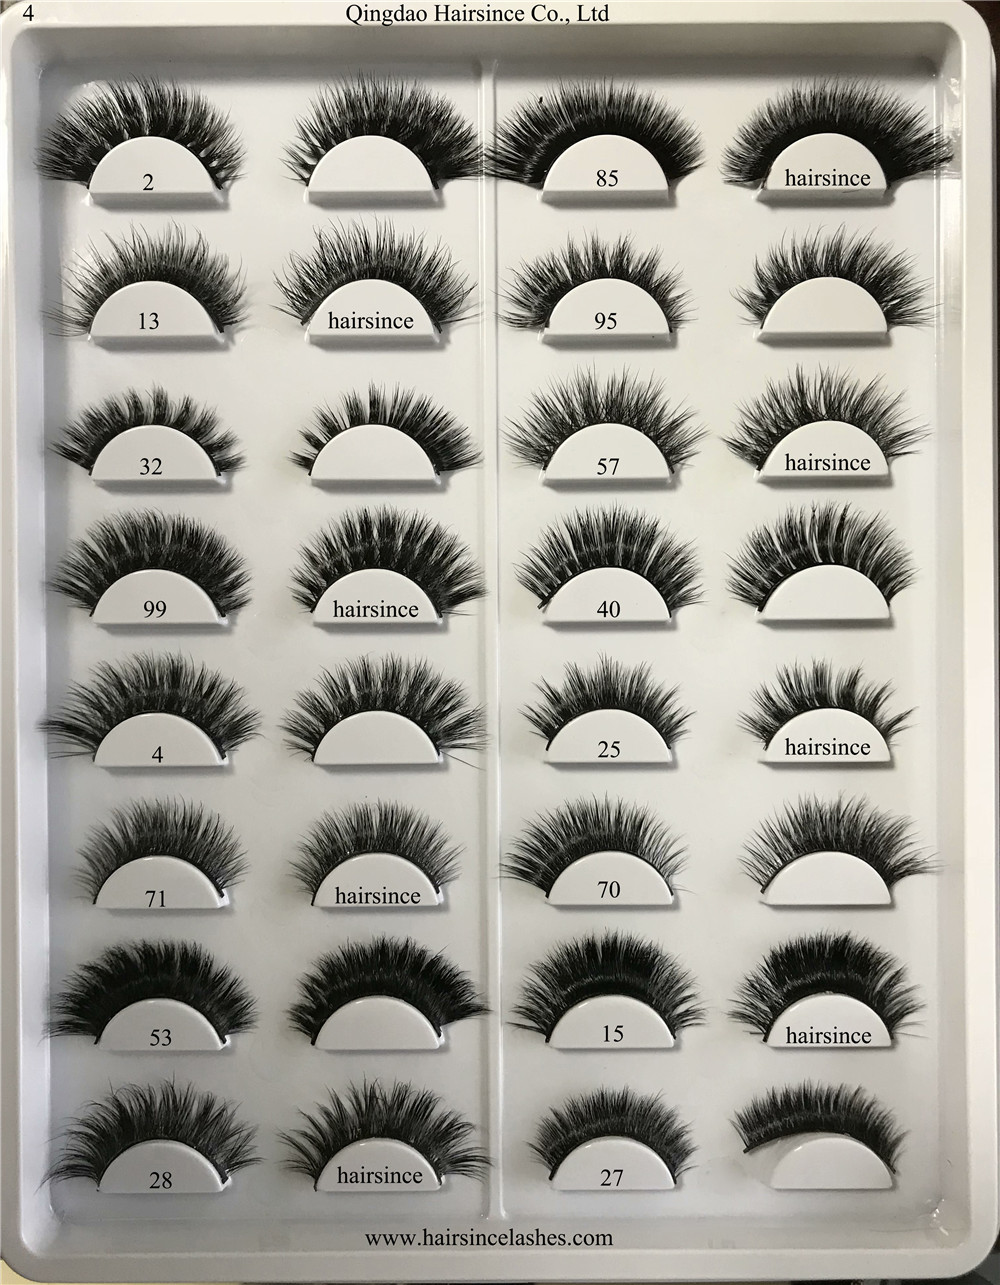 Wholesale lashes products factory lashes supply 3D mink hair lashes popular styles from Alibaba